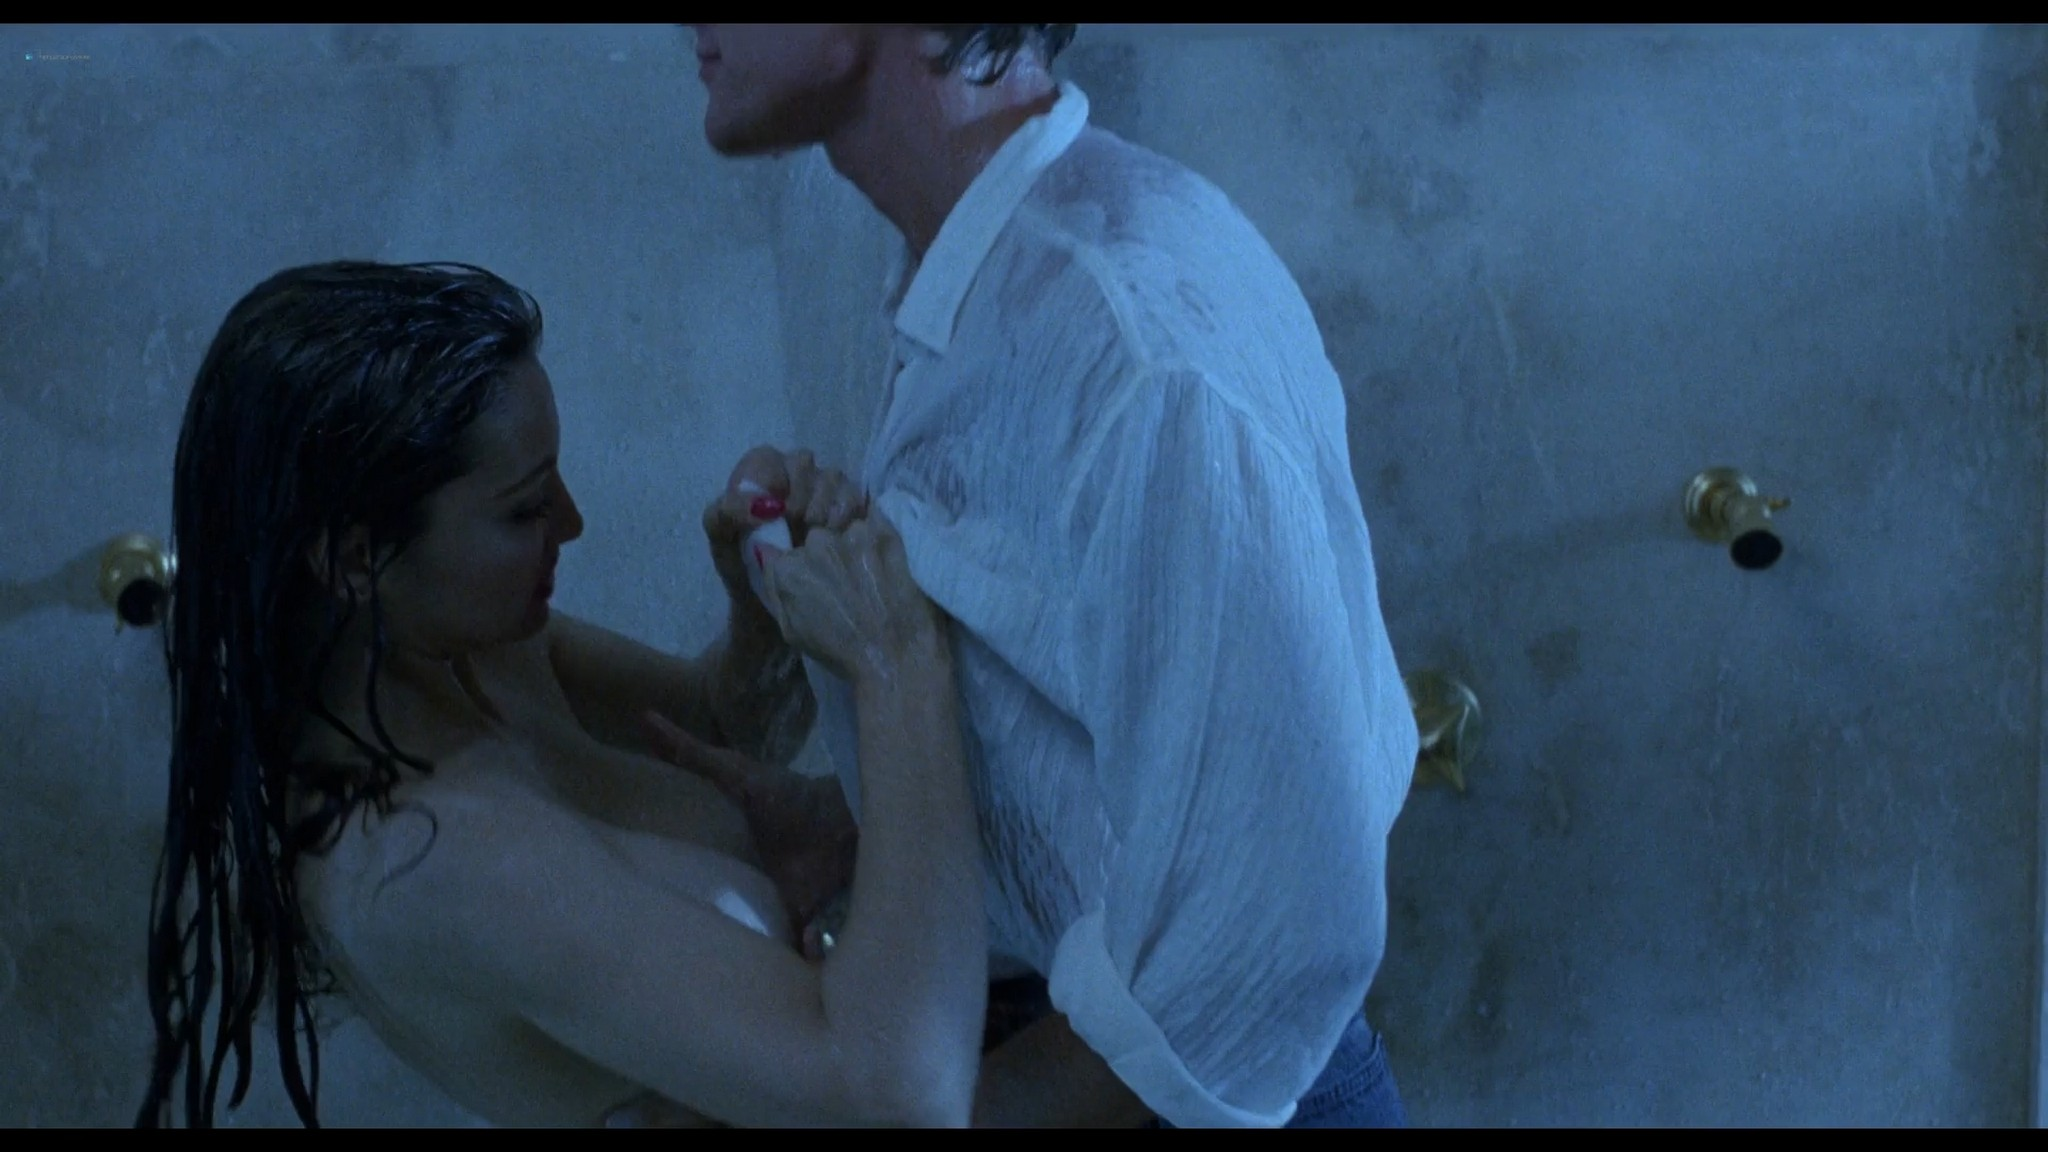 Shannon Tweed nude sex Adrienne Sachs nude sex in the shower In the Cold of the Night 1989 1080p BluRay 10